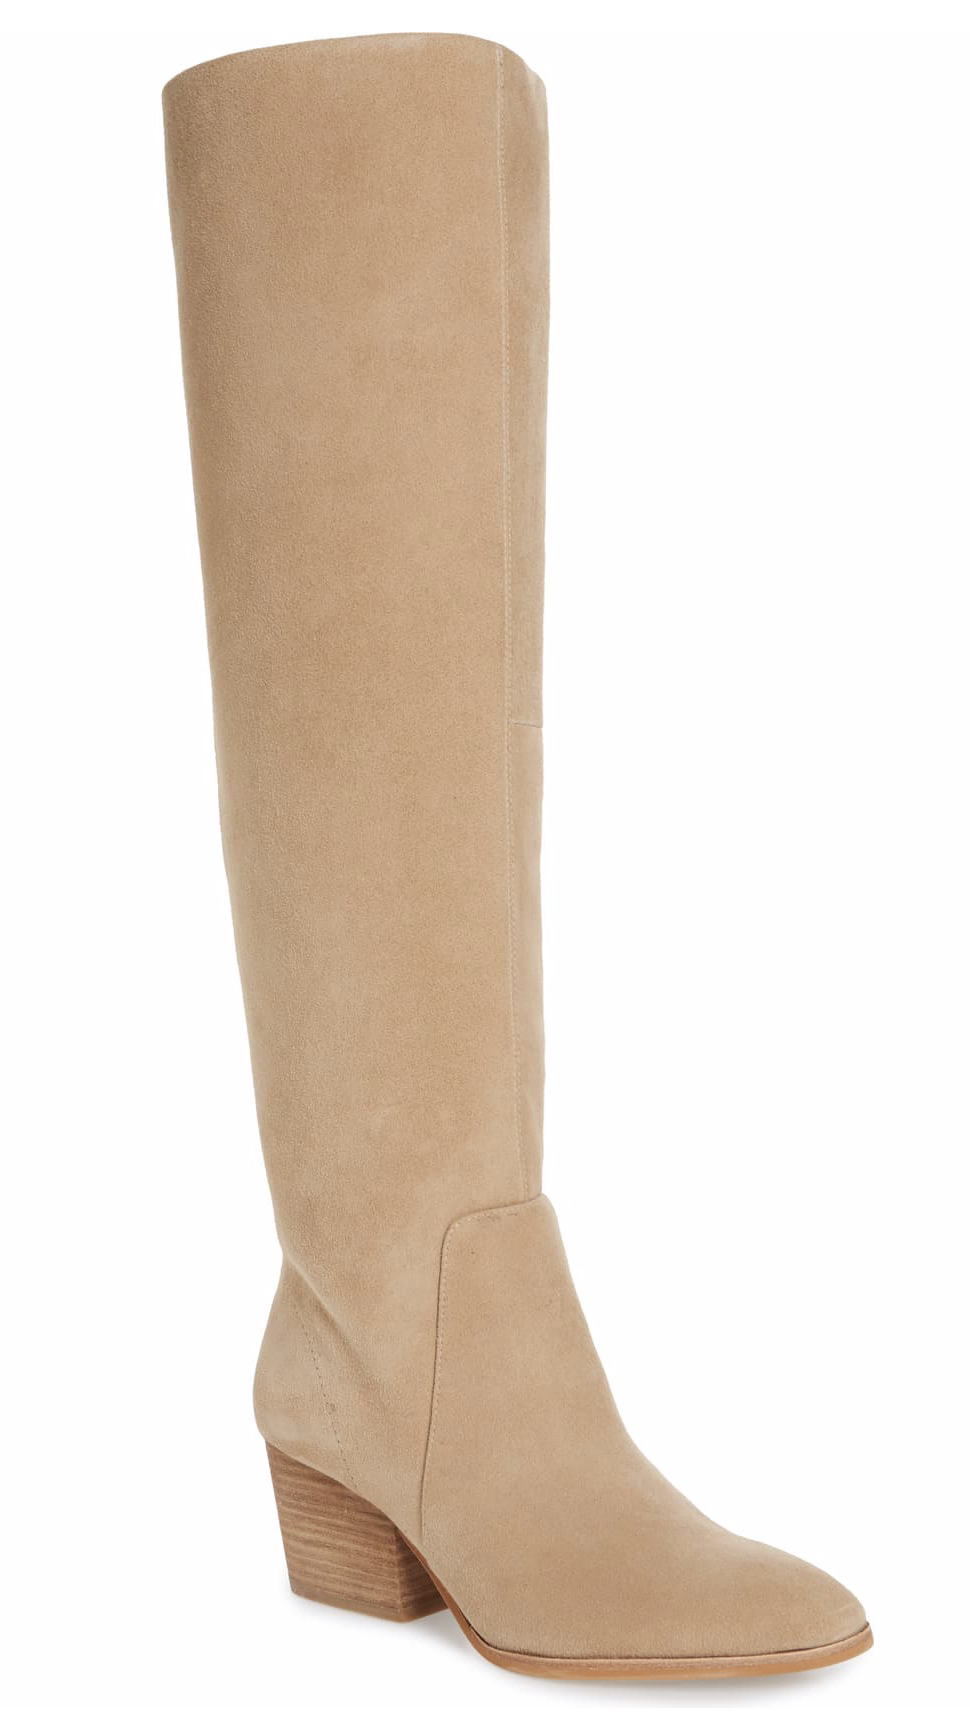 Vince Camuto Nestel Knee High Boot - $159.90